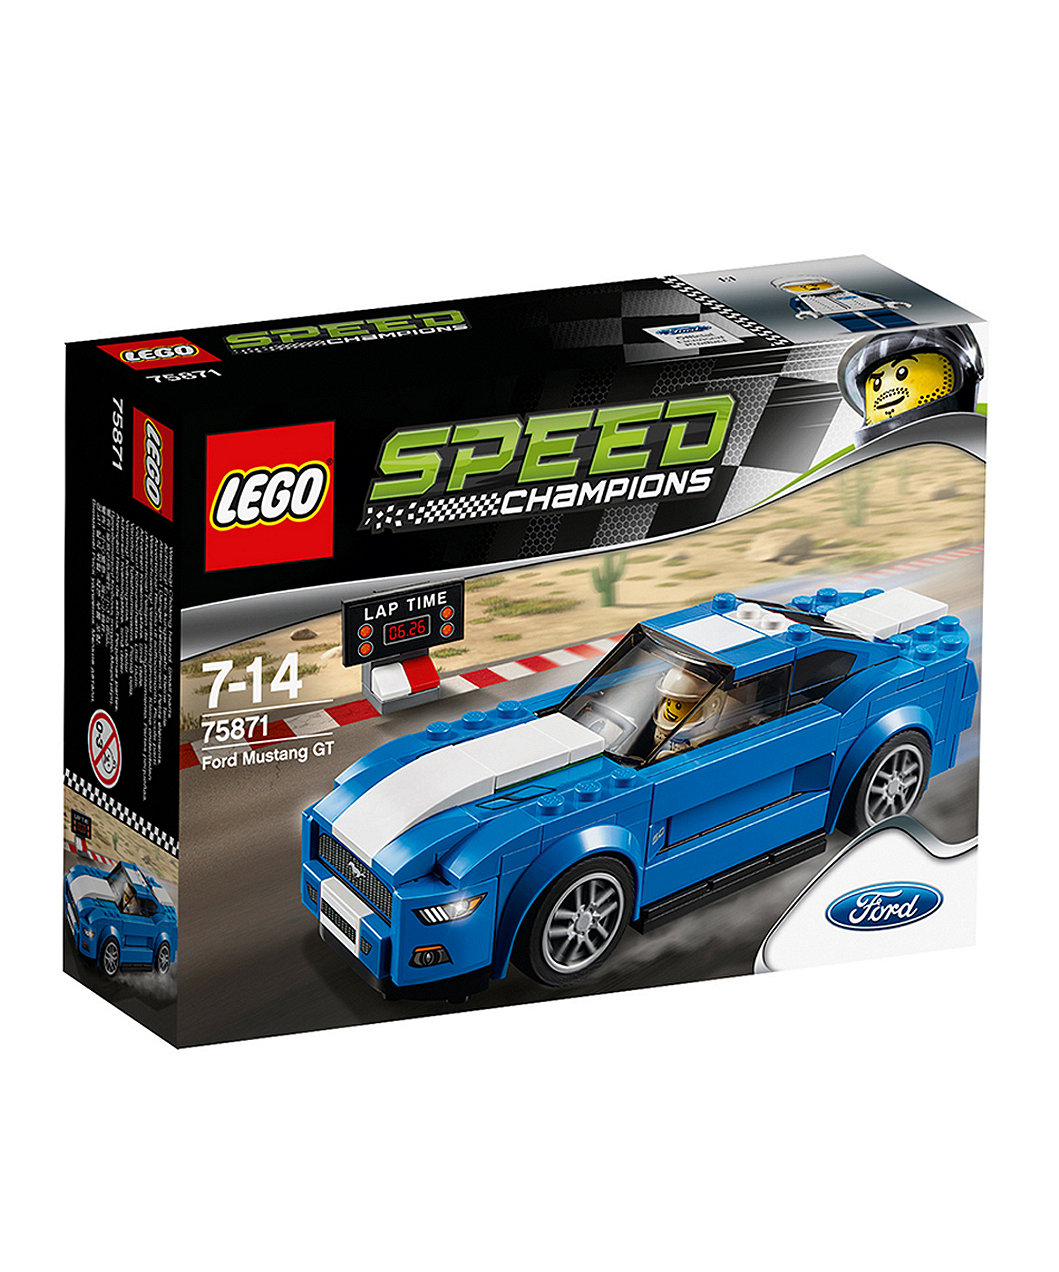 Lego 75871 Lsc Ford Mustang Gt | ELC Indonesia on ford wrangler price, ford f-250 price, 2002 mustang price, fisker mustang price, ford ltd price, ford gt350 price, hummer price, ford f-350 price, toyota f1 price, ken block mustang price, chevy s10 price, 1994 mustang price, dodge mustang price, ford f-150 fx4 price, ford e-250 price, ford probe price, ford f 450 price, 1989 mustang price, ford lightning price, gt350 mustang price,